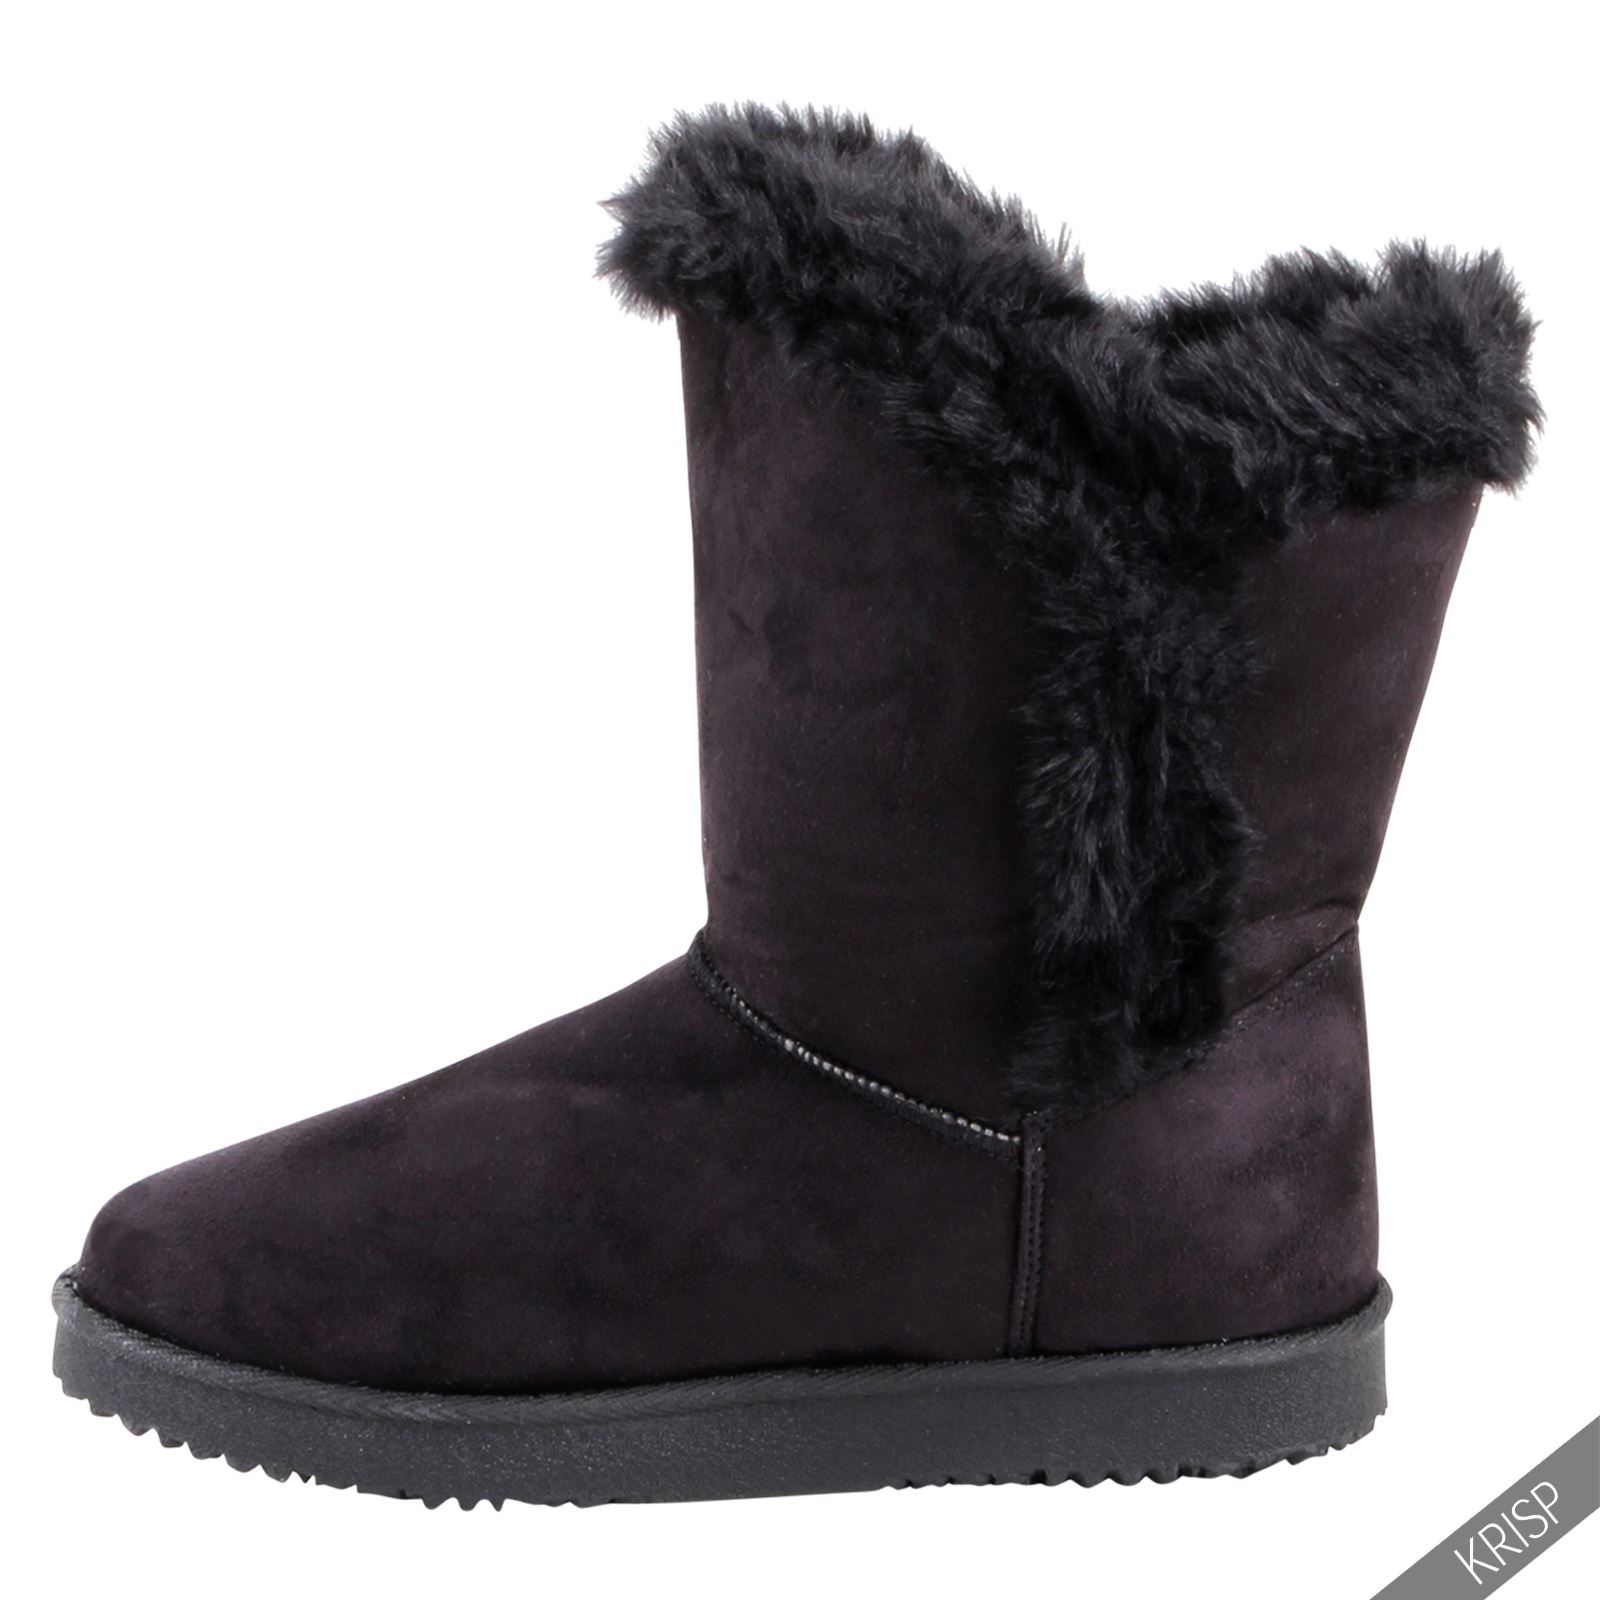 womens warm fur lined snug ankle calf boots flat